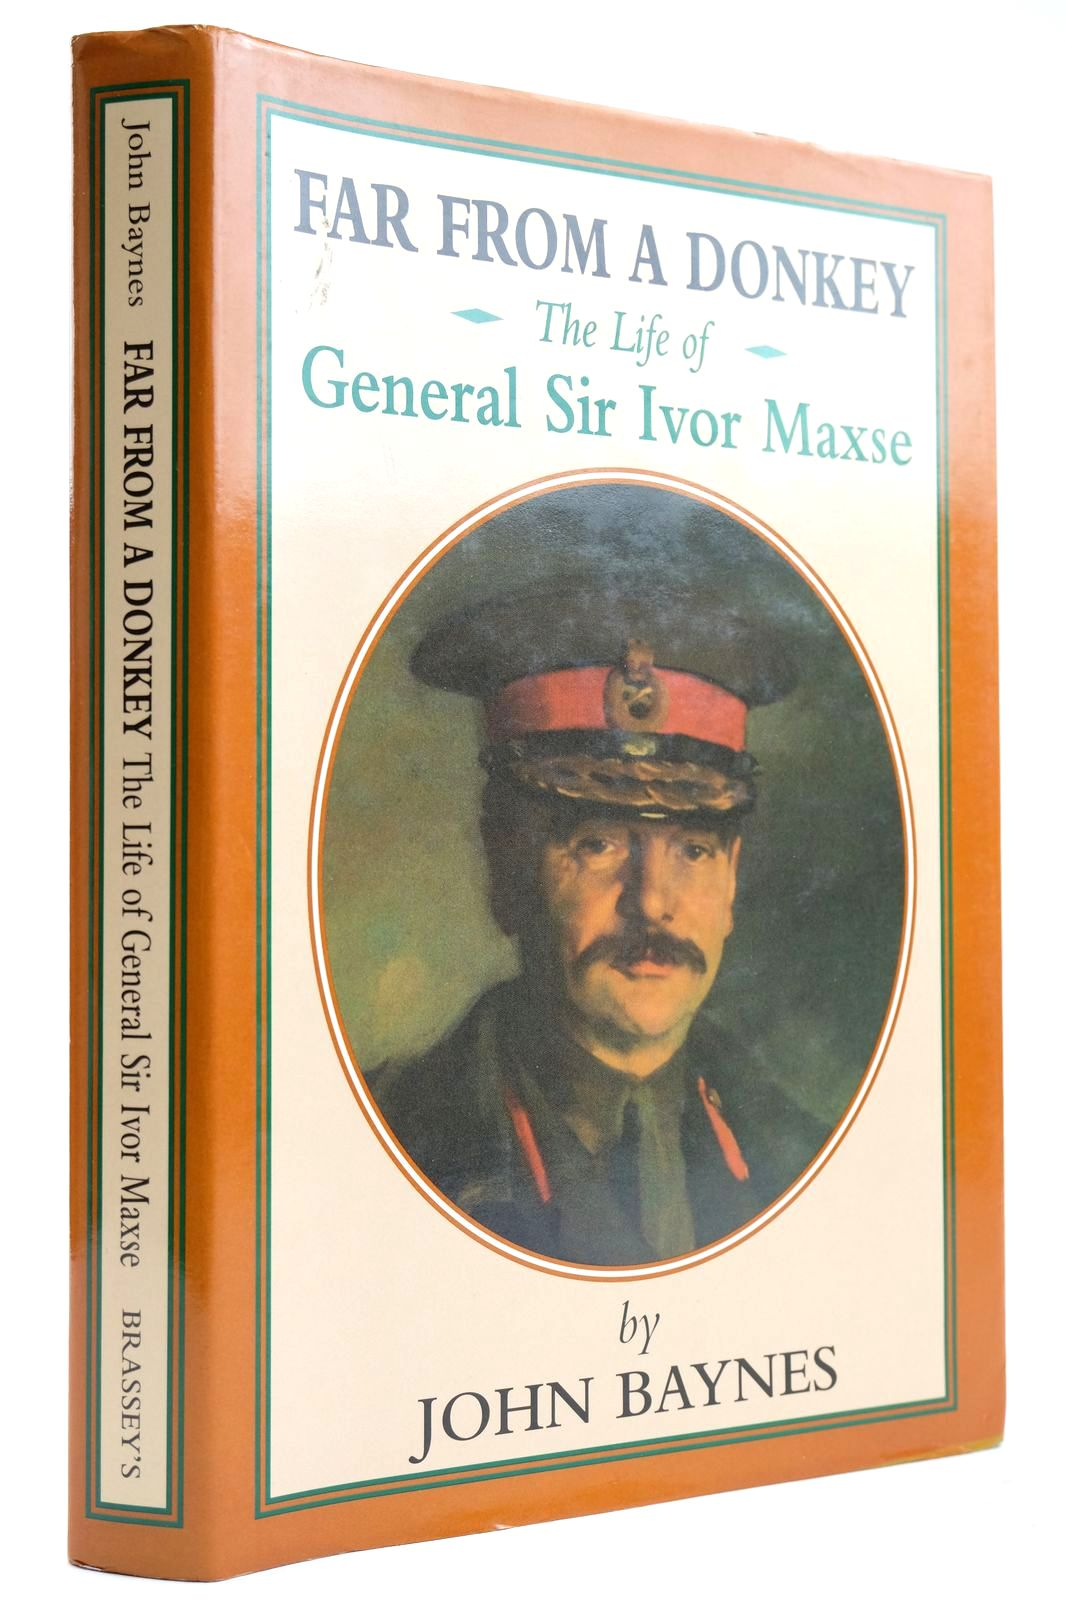 Photo of FAR FROM A DONKEY THE LIFE OF GENERAL SIR IVOR MAXSE written by Baynes, John published by Brassey's (STOCK CODE: 2132653)  for sale by Stella & Rose's Books